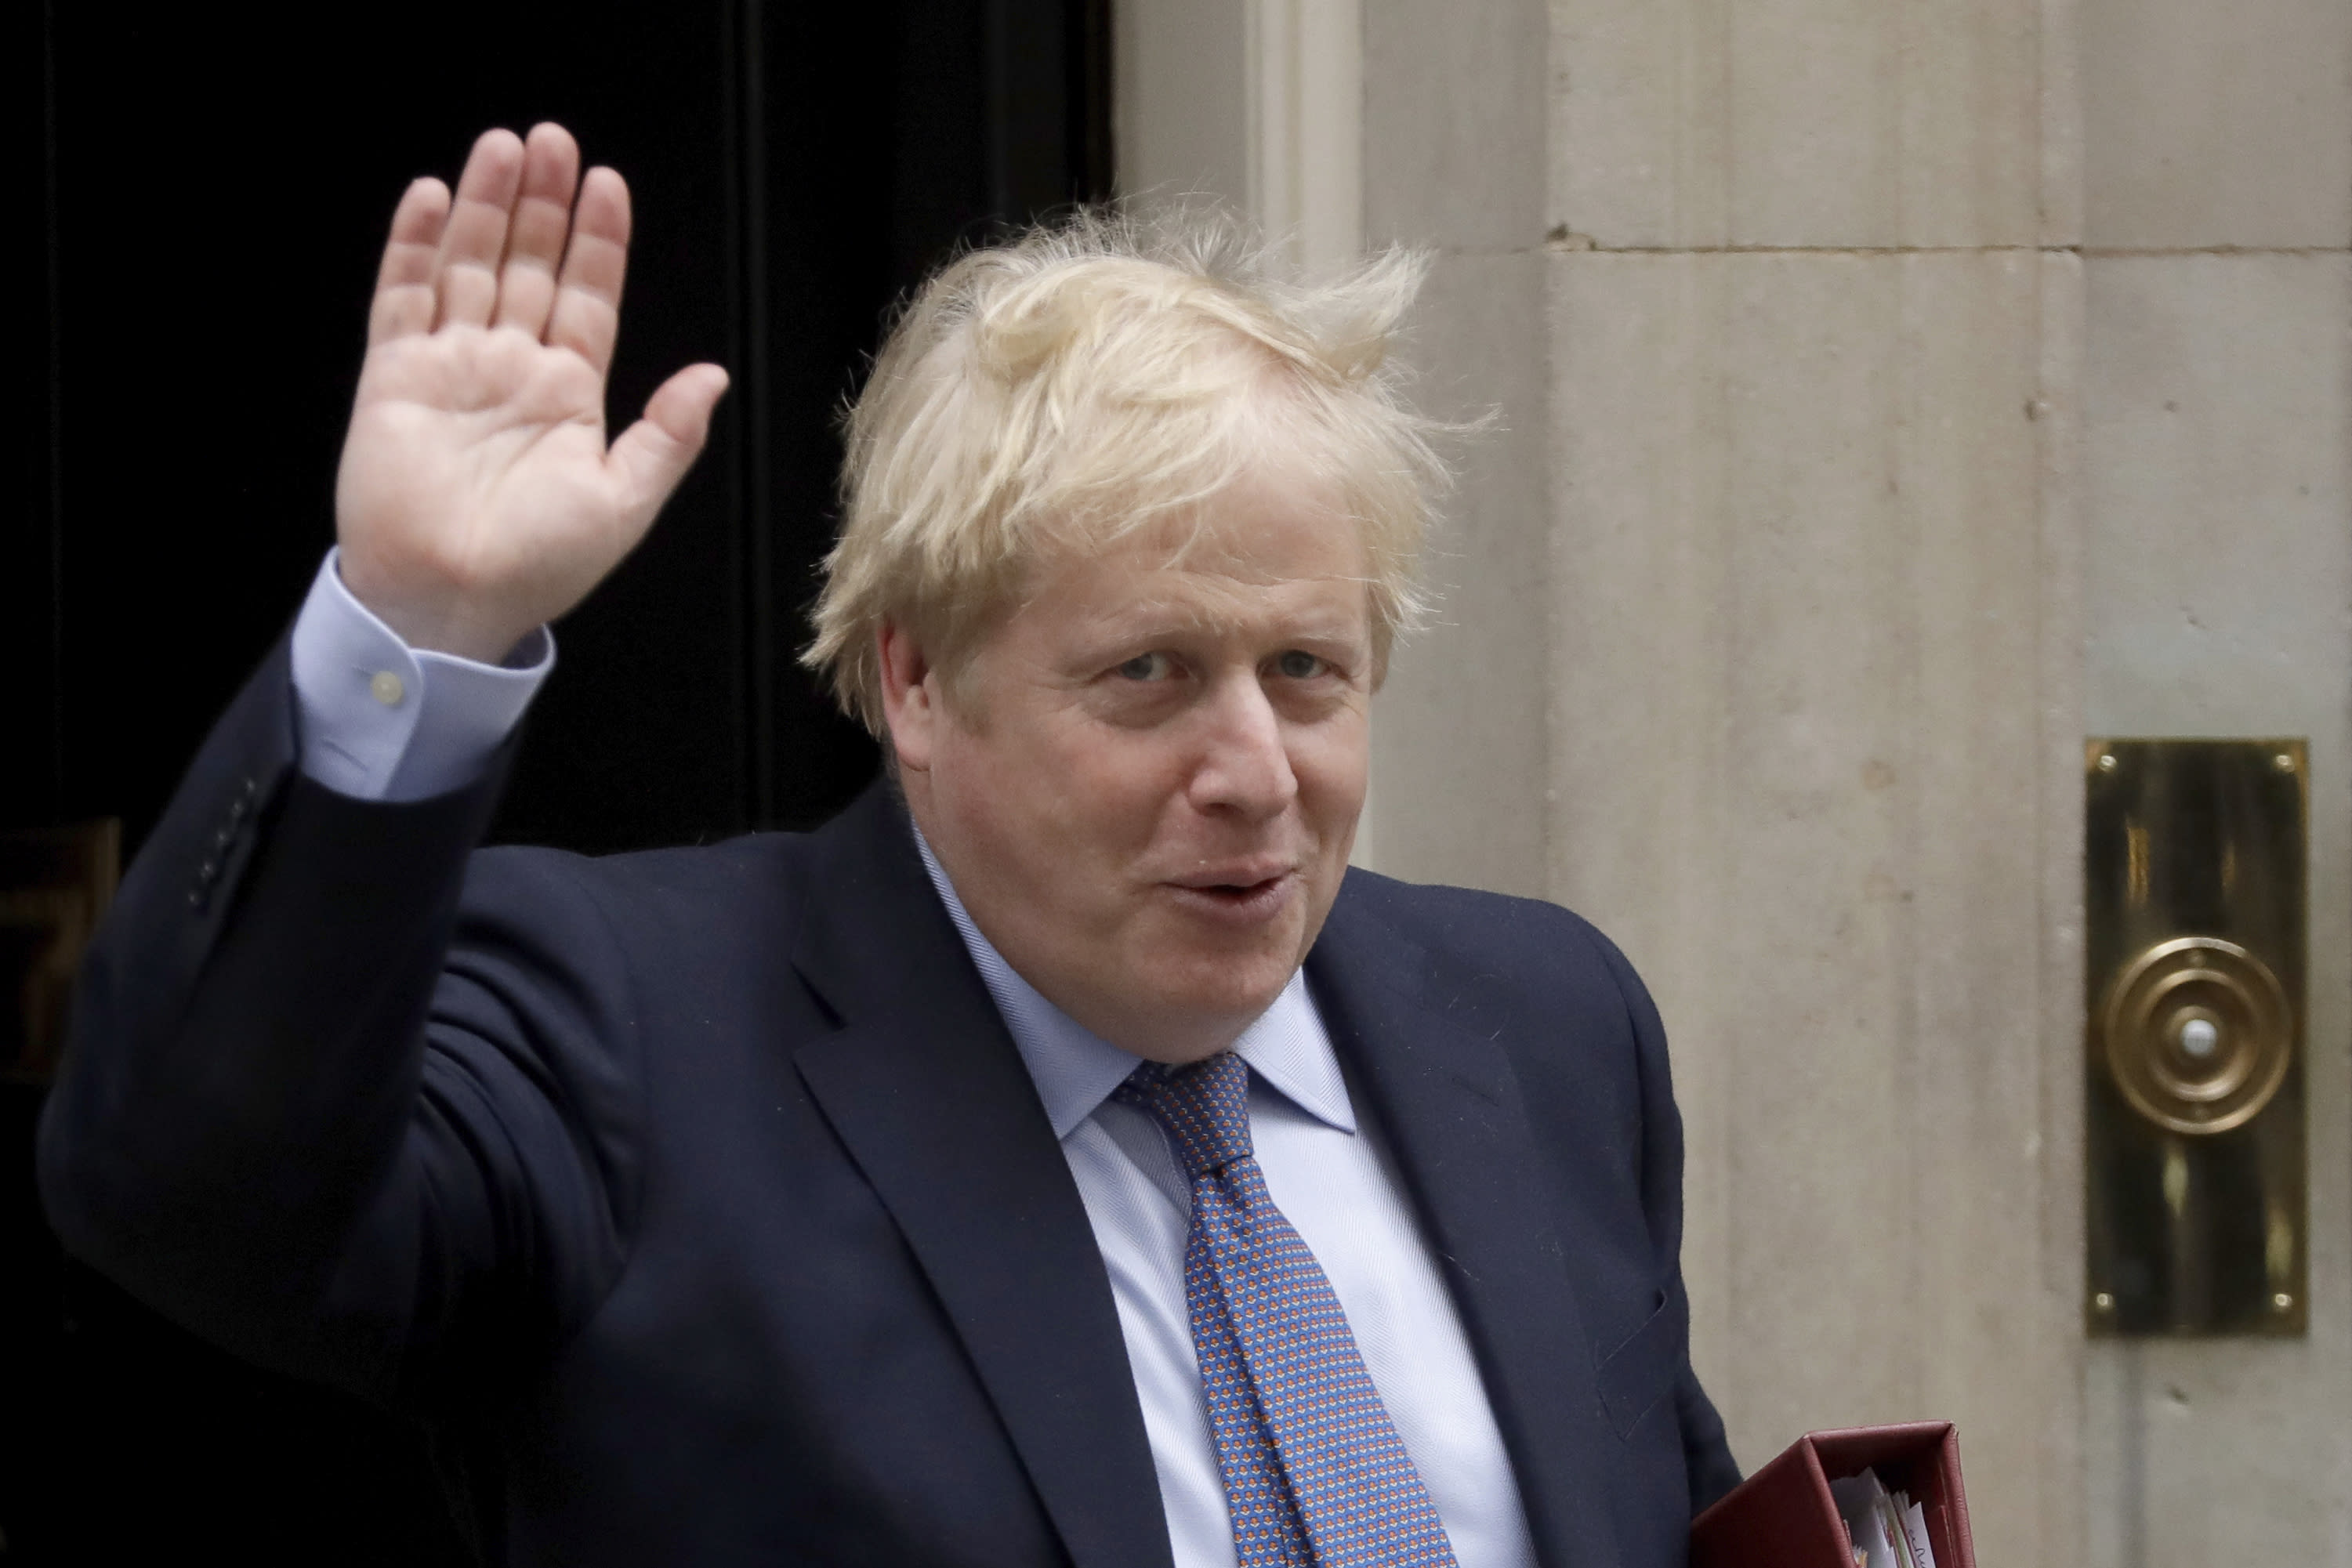 British Prime Minister Boris Johnson waves at the media as he leaves 10 Downing Street in London, to attend the weekly Prime Minister's Questions at the Houses of Parliament, in London, Wednesday, Feb. 26, 2020. (AP Photo/Matt Dunham)